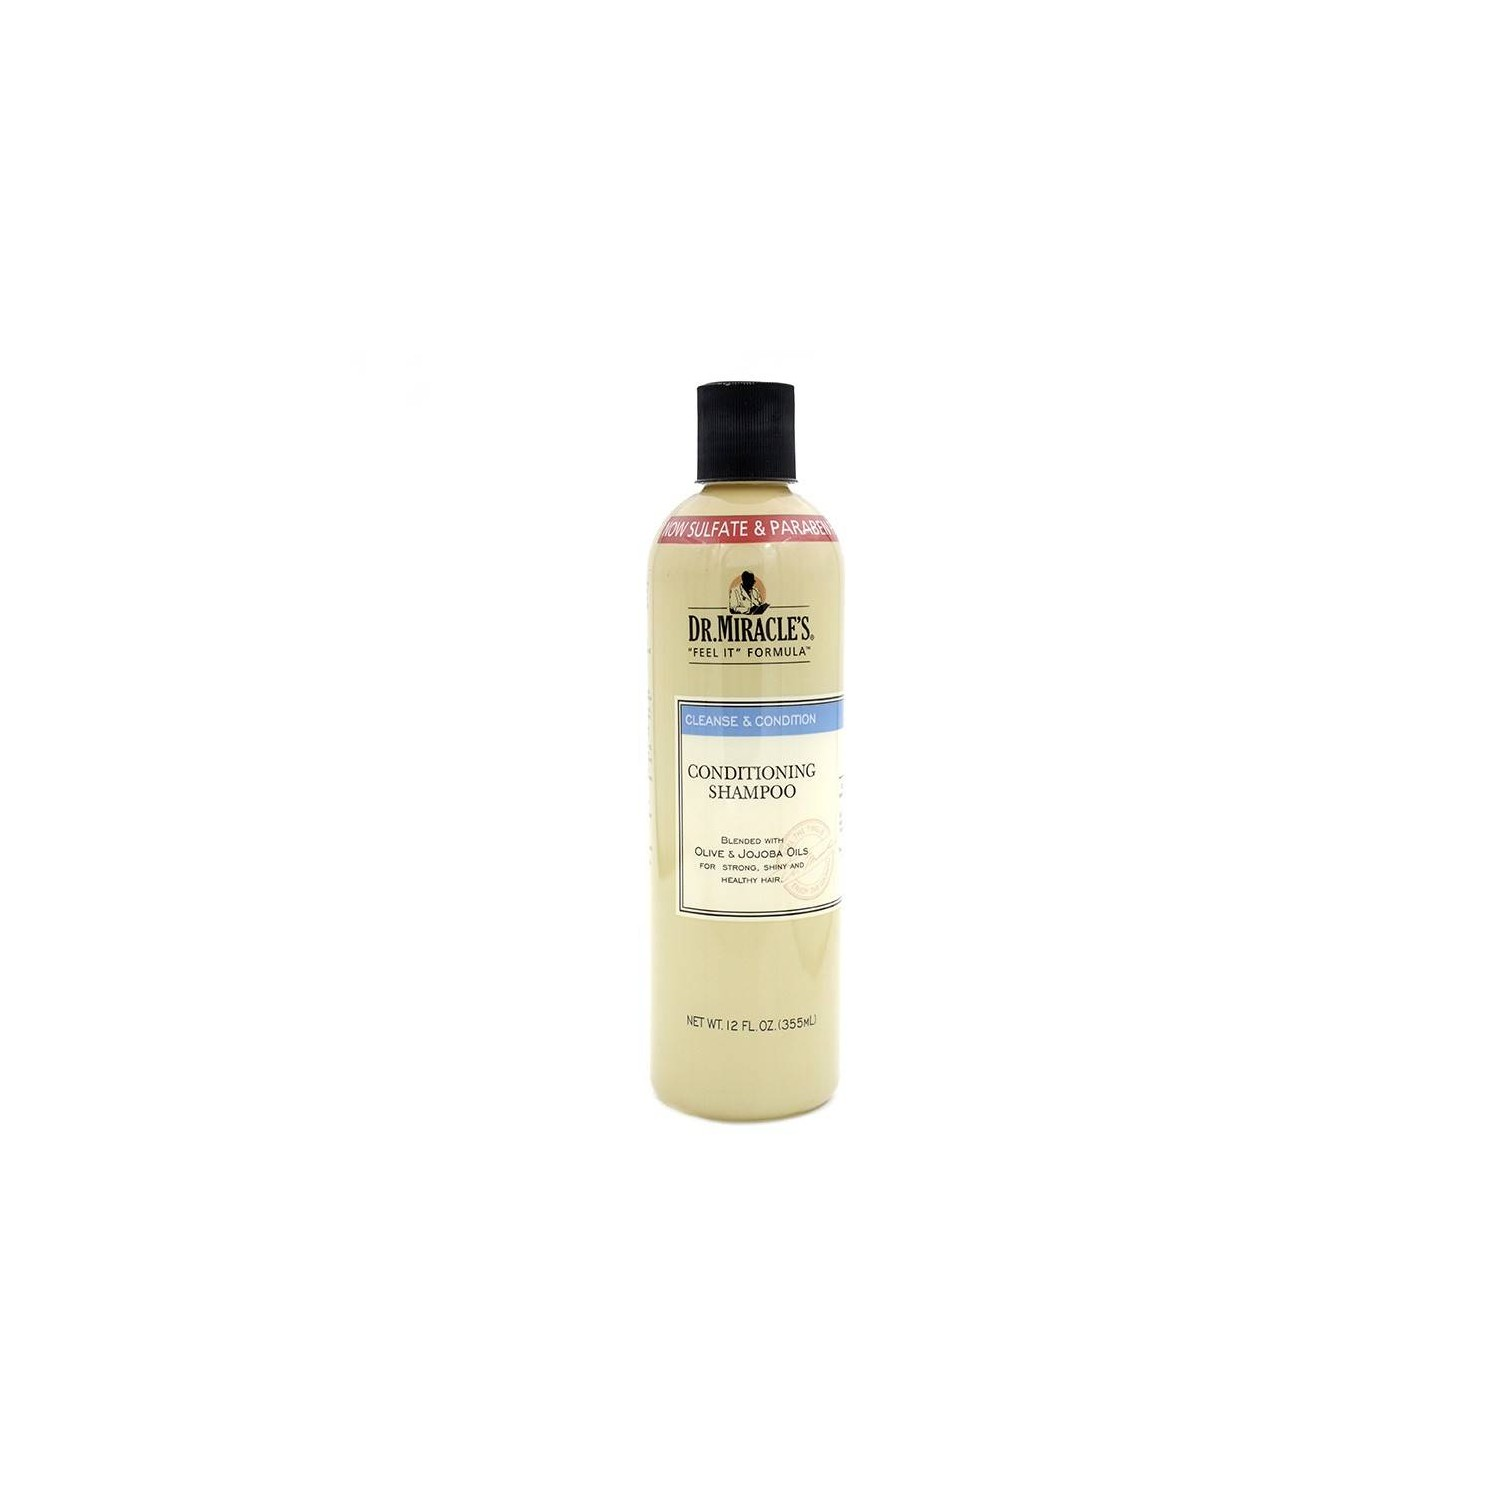 Dr. Miracles Conditioning Shampoo 355 Ml